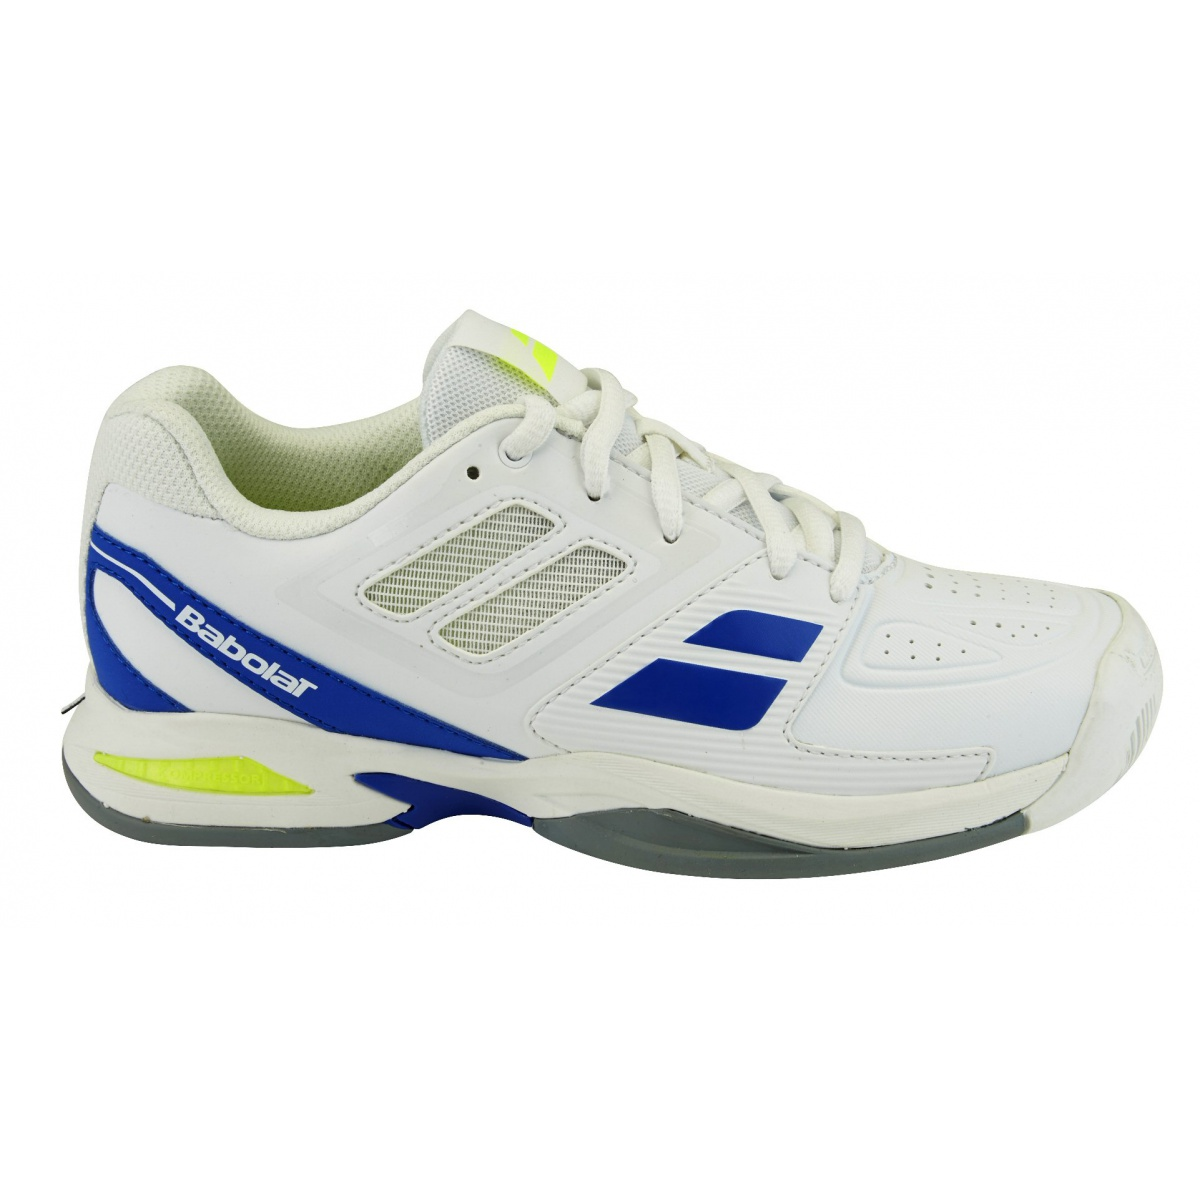 BABOLAT Propulse Team All Court Schuhe Kinder, Blau, 31